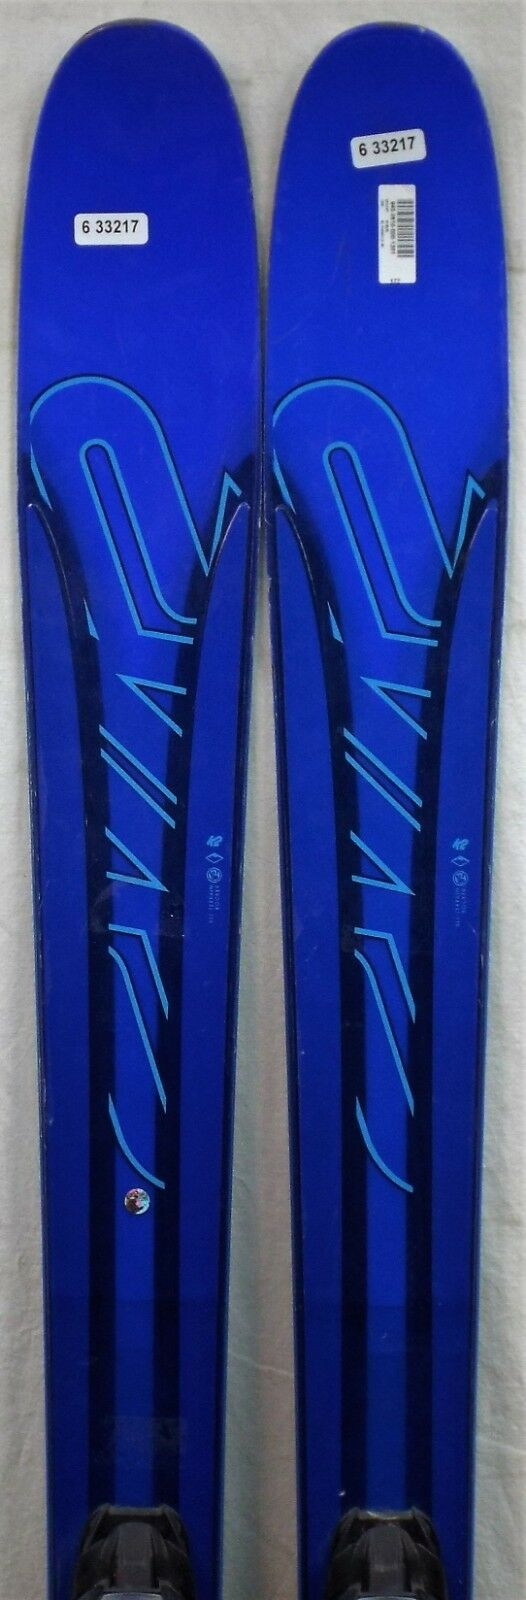 16-17 K2 Pinnacle 88 Used Men's Demo Skis w  Bindings Size 177cm  supply quality product